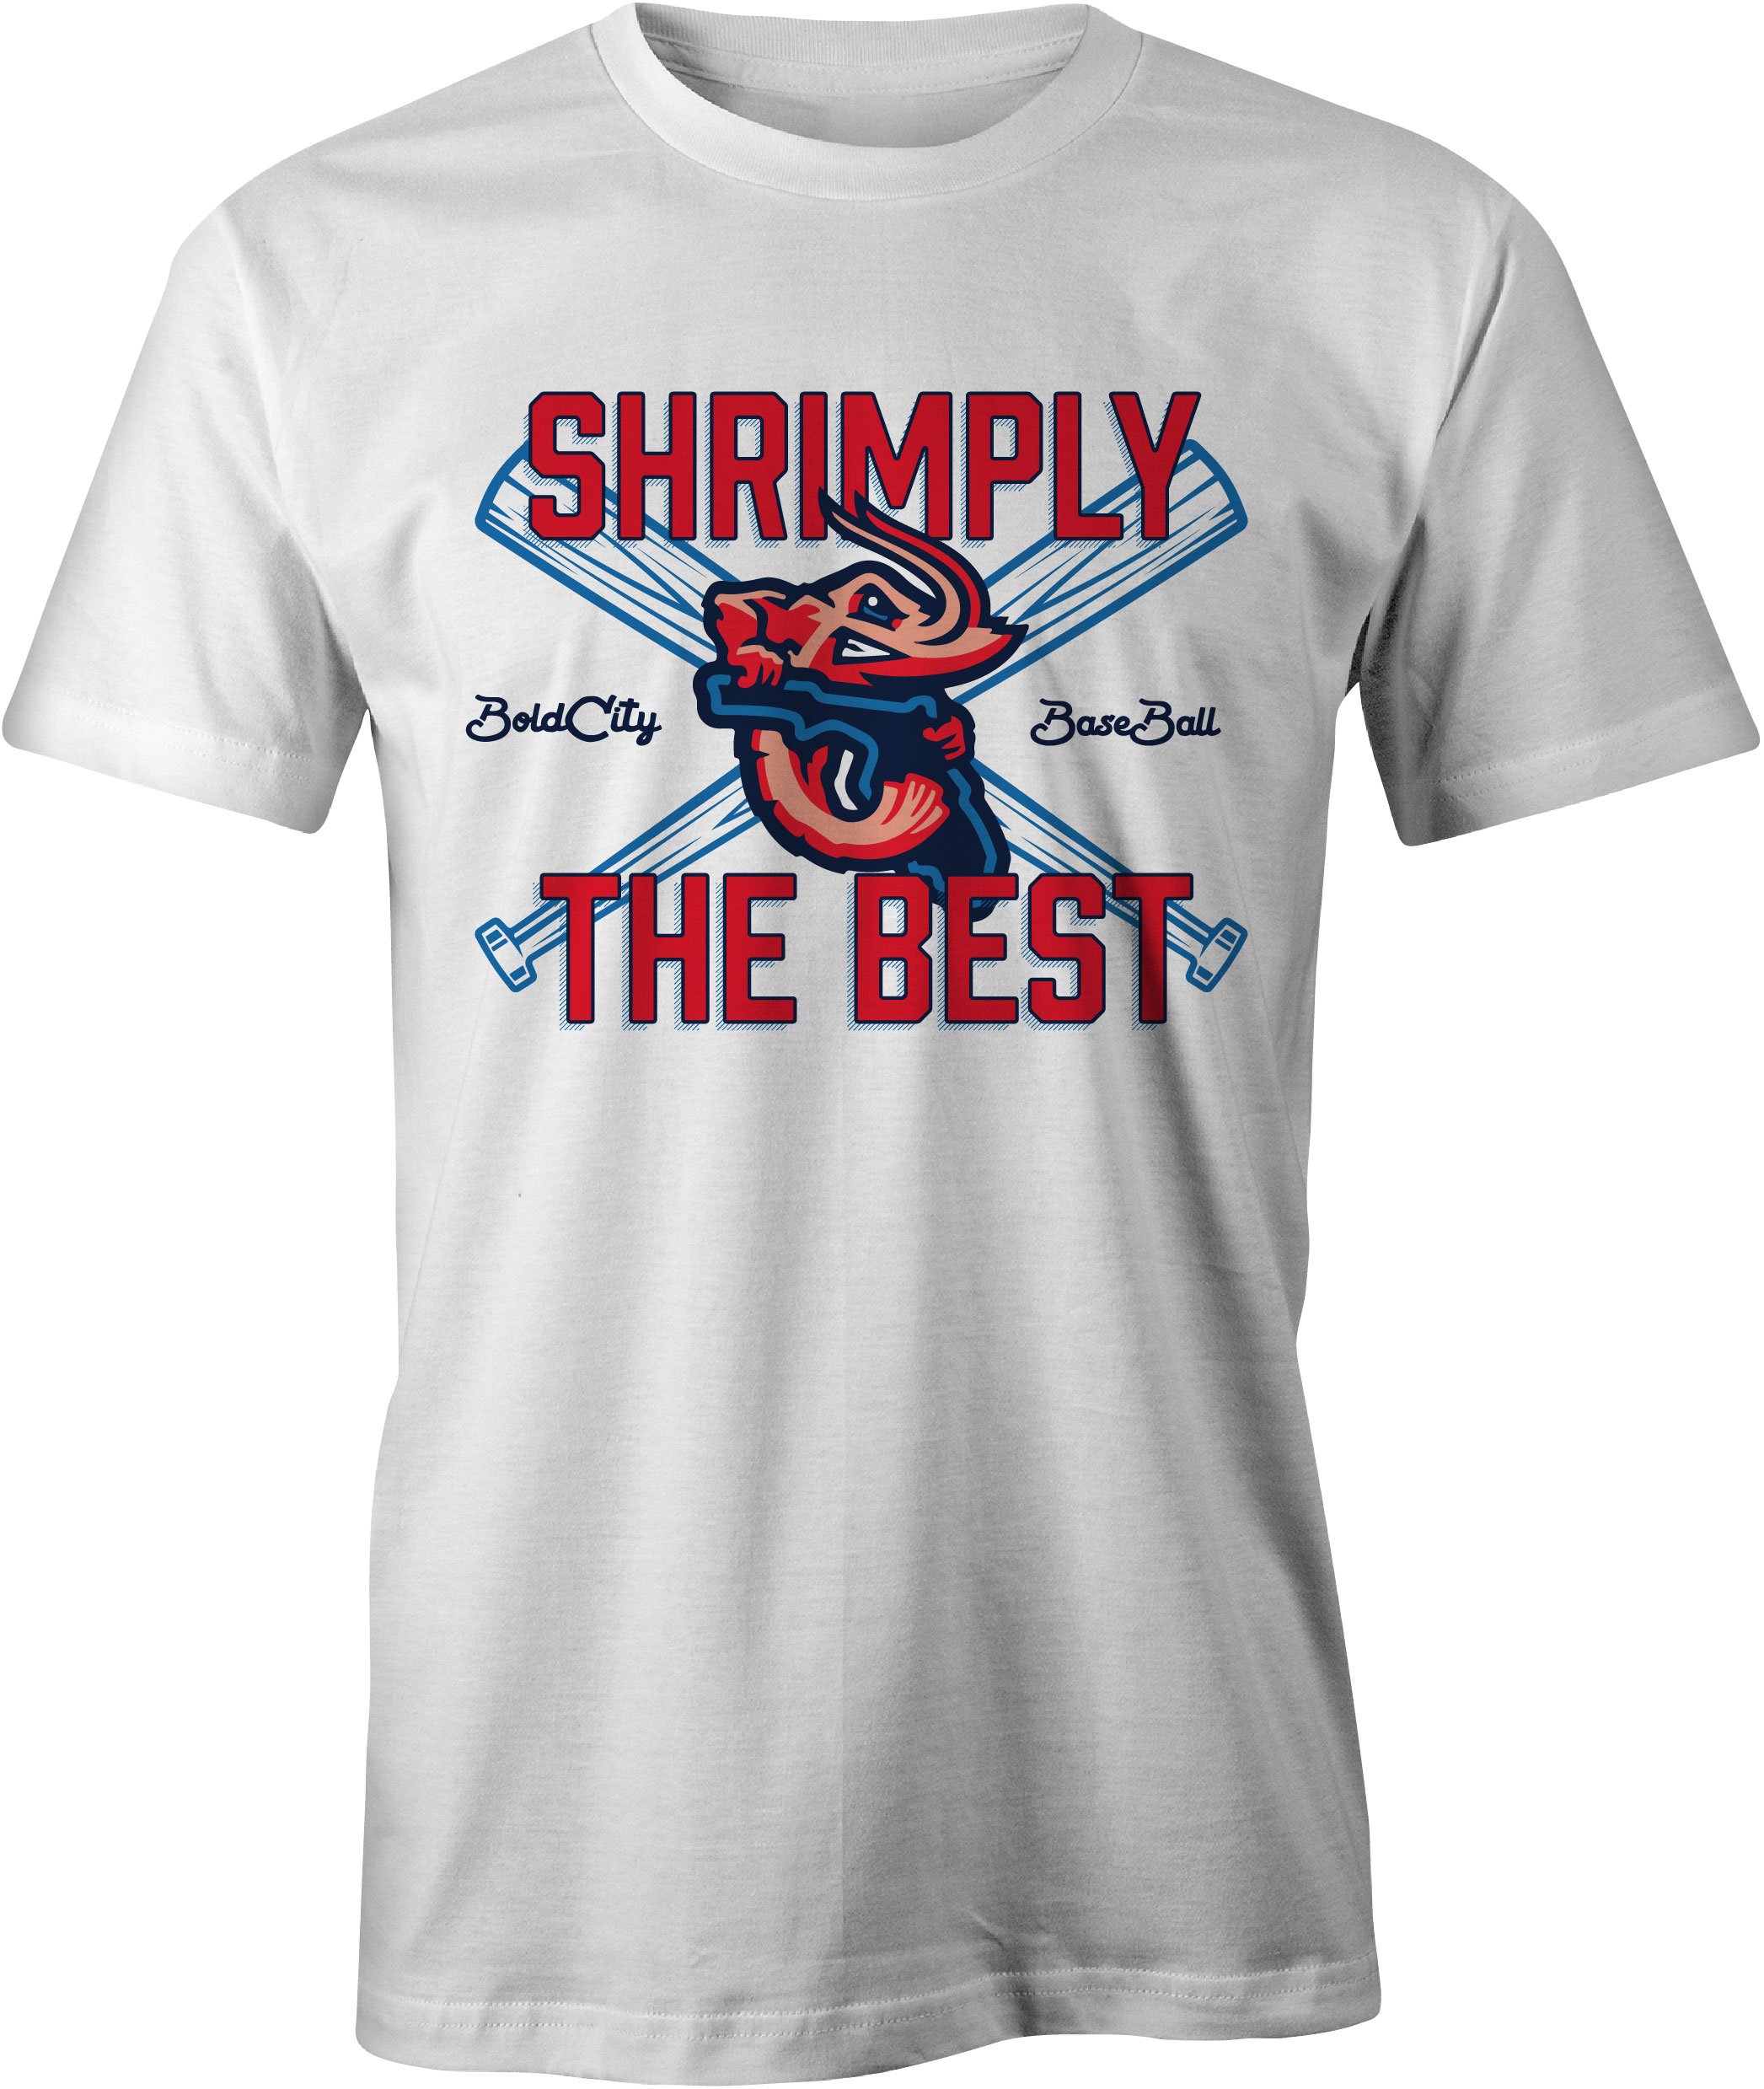 Shrimply the Best\